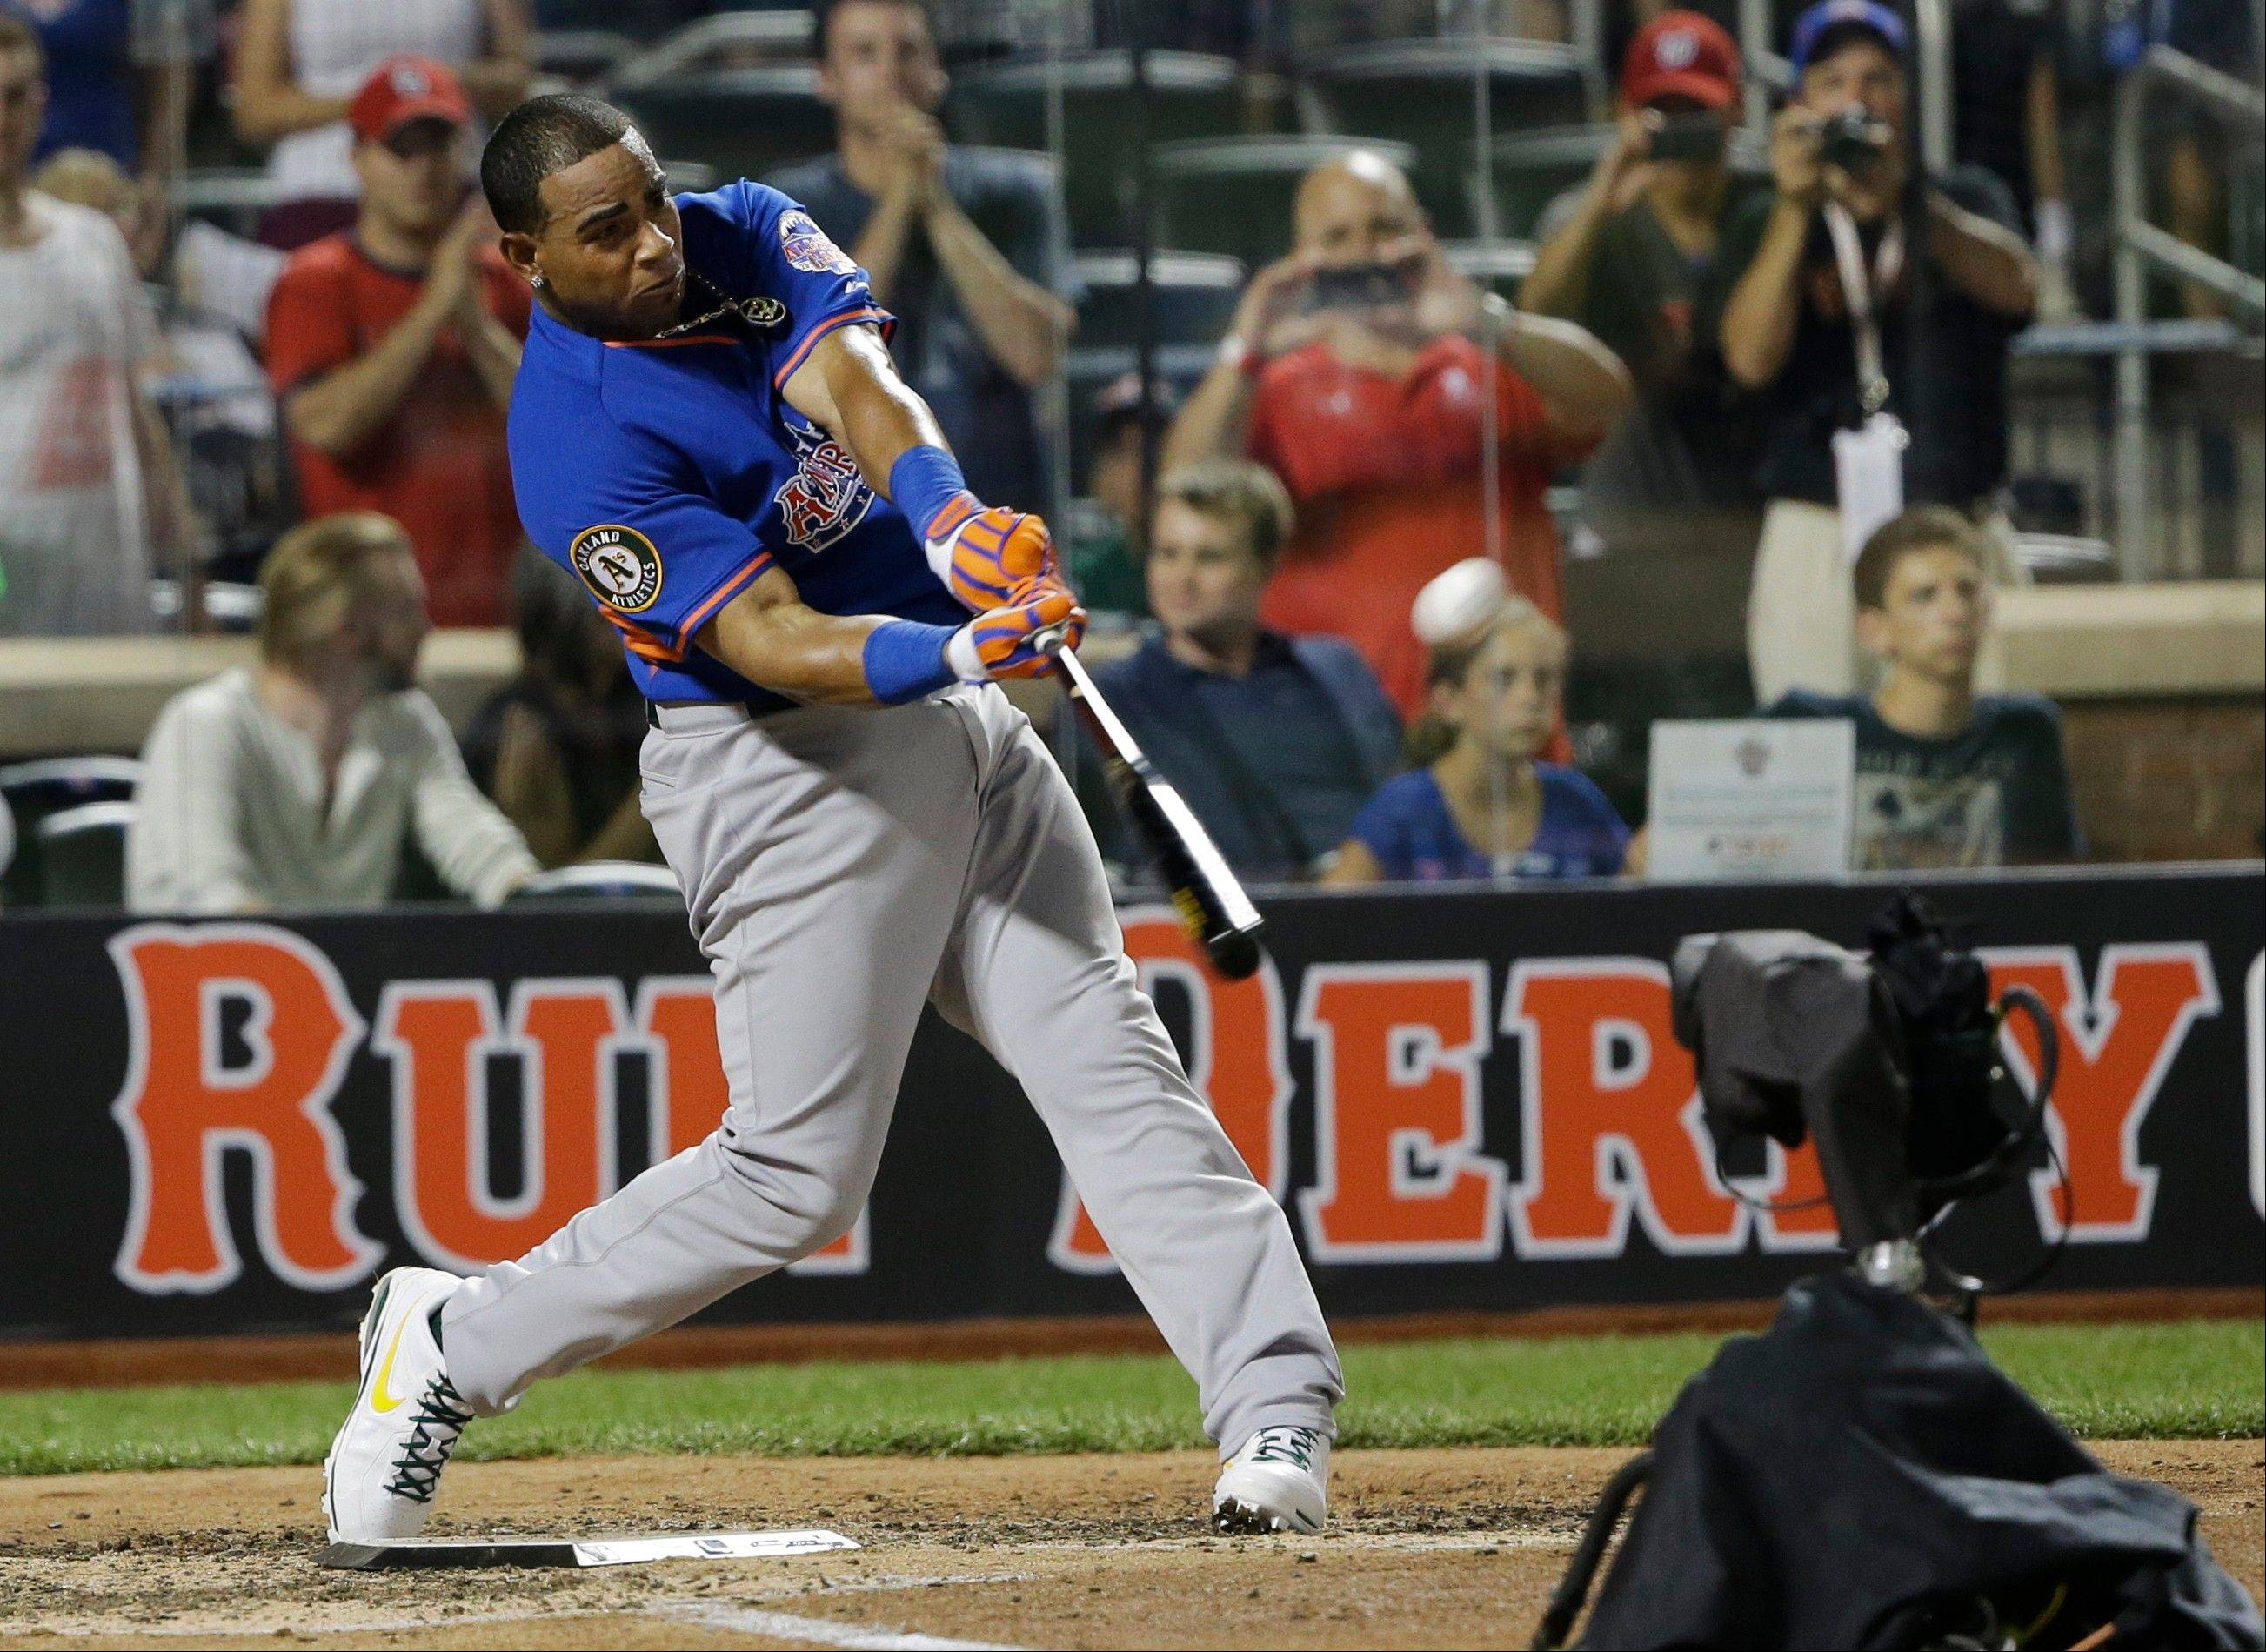 American League slugger Yoenis Cespedes of the Oakland Athletics hits his ninth home run in Monday's third round to win the MLB All-Star Home Run Derby at Citi Field in New York.